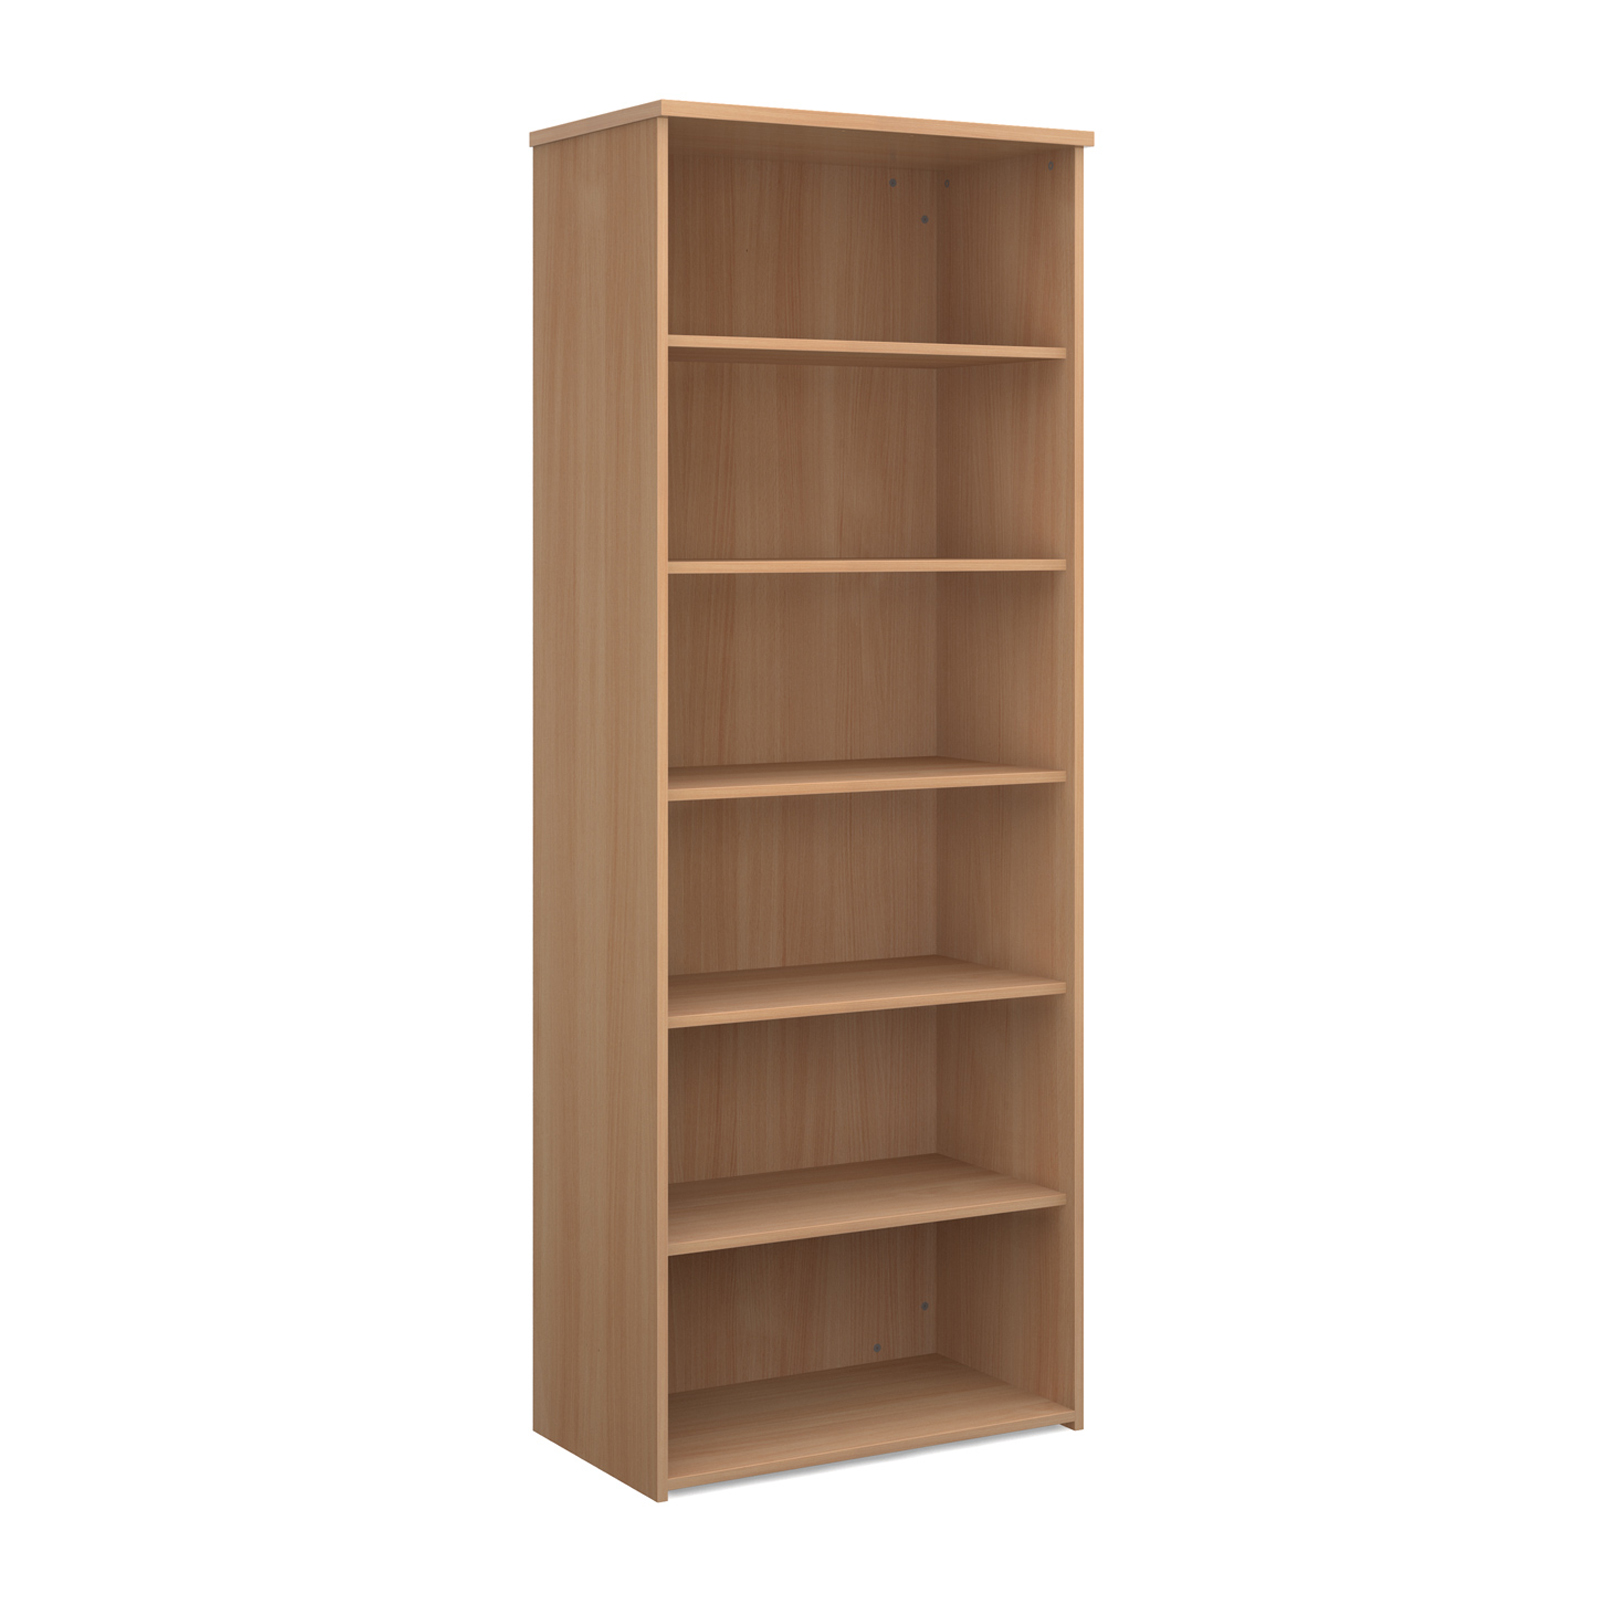 Over 1200mm High Universal bookcase 2140mm high with 5 shelves - beech